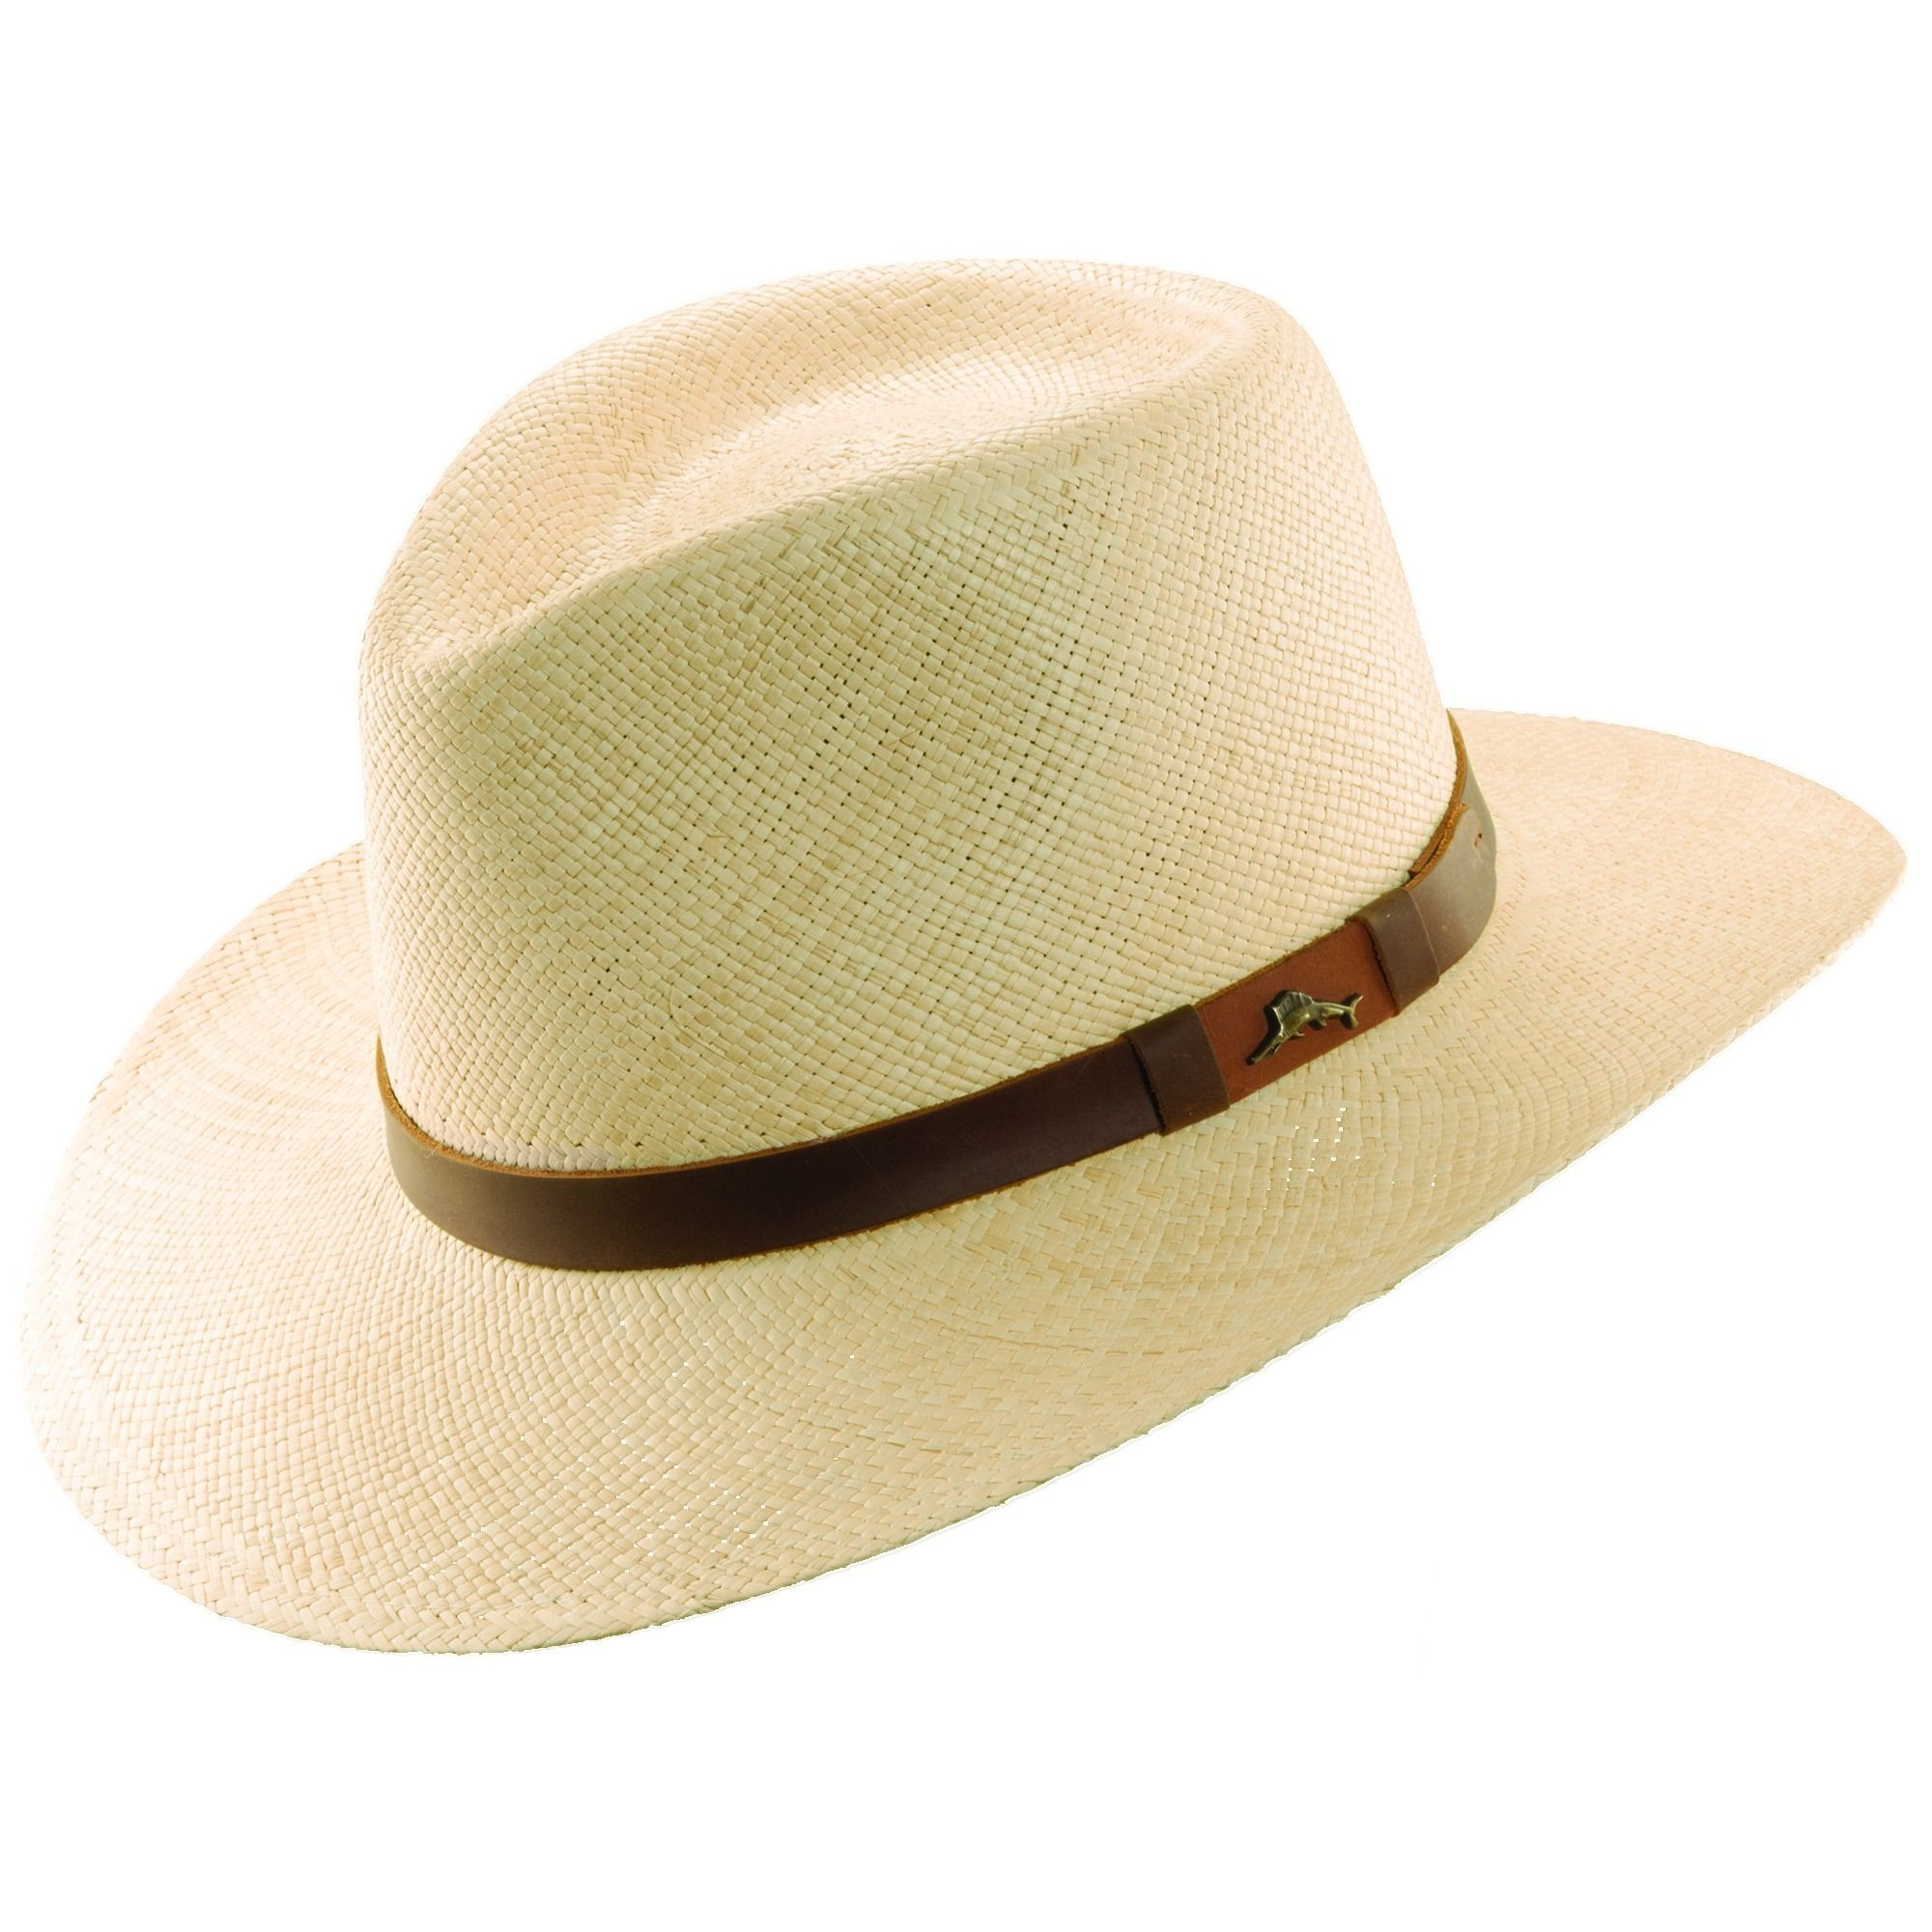 Find great deals on eBay for straw hat new york. Shop with confidence.